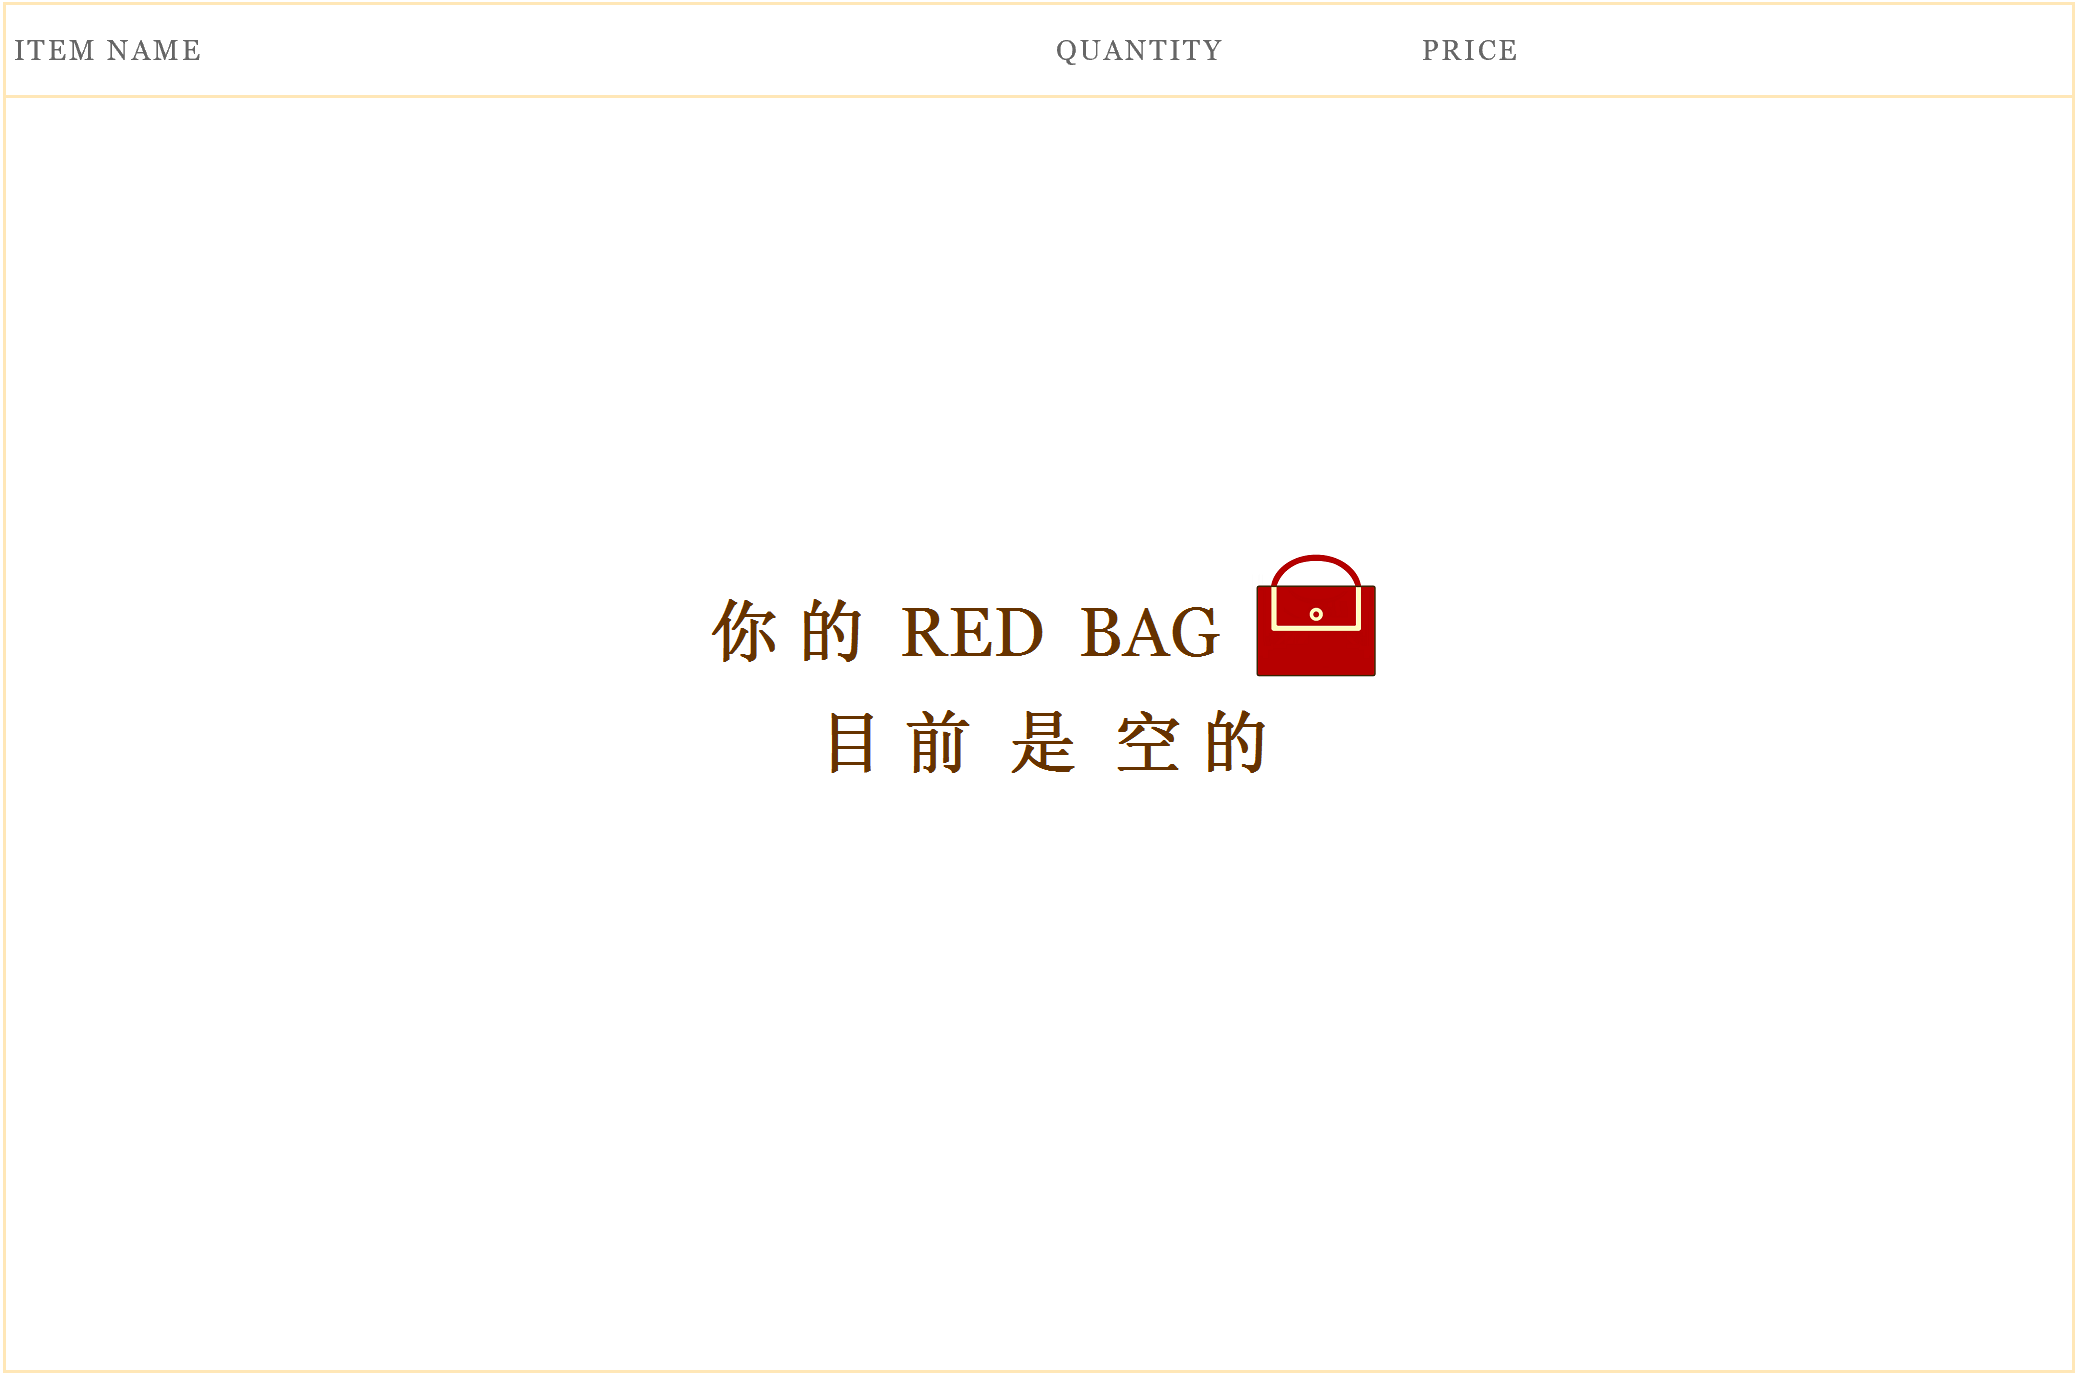 http://redkarawana.com/wp-content/uploads/2016/07/0n-CN-Red-Bag-Empty-Image.png